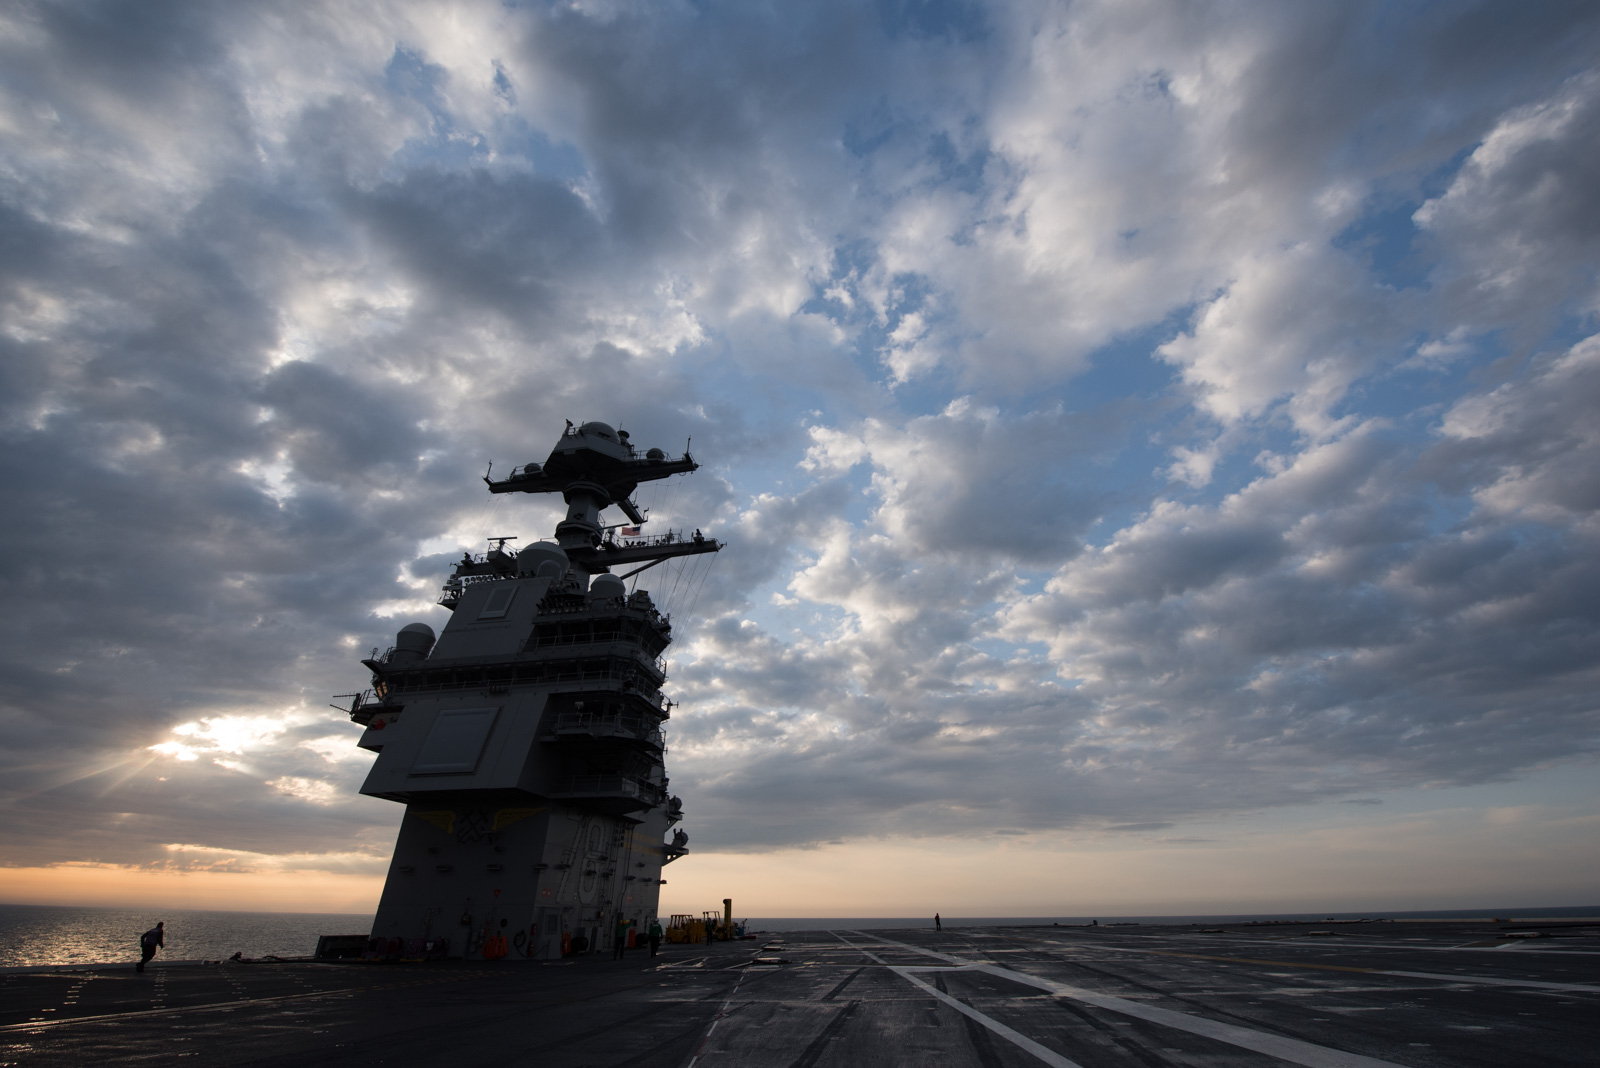 Aircraft carrier Gerald R. Ford (CVN 78) returned to Naval Station Norfolk on April 14, 2017, after successfully completing builder's sea trials. During the carrier's time at sea, her systems, components and compartments were tested for the first time.